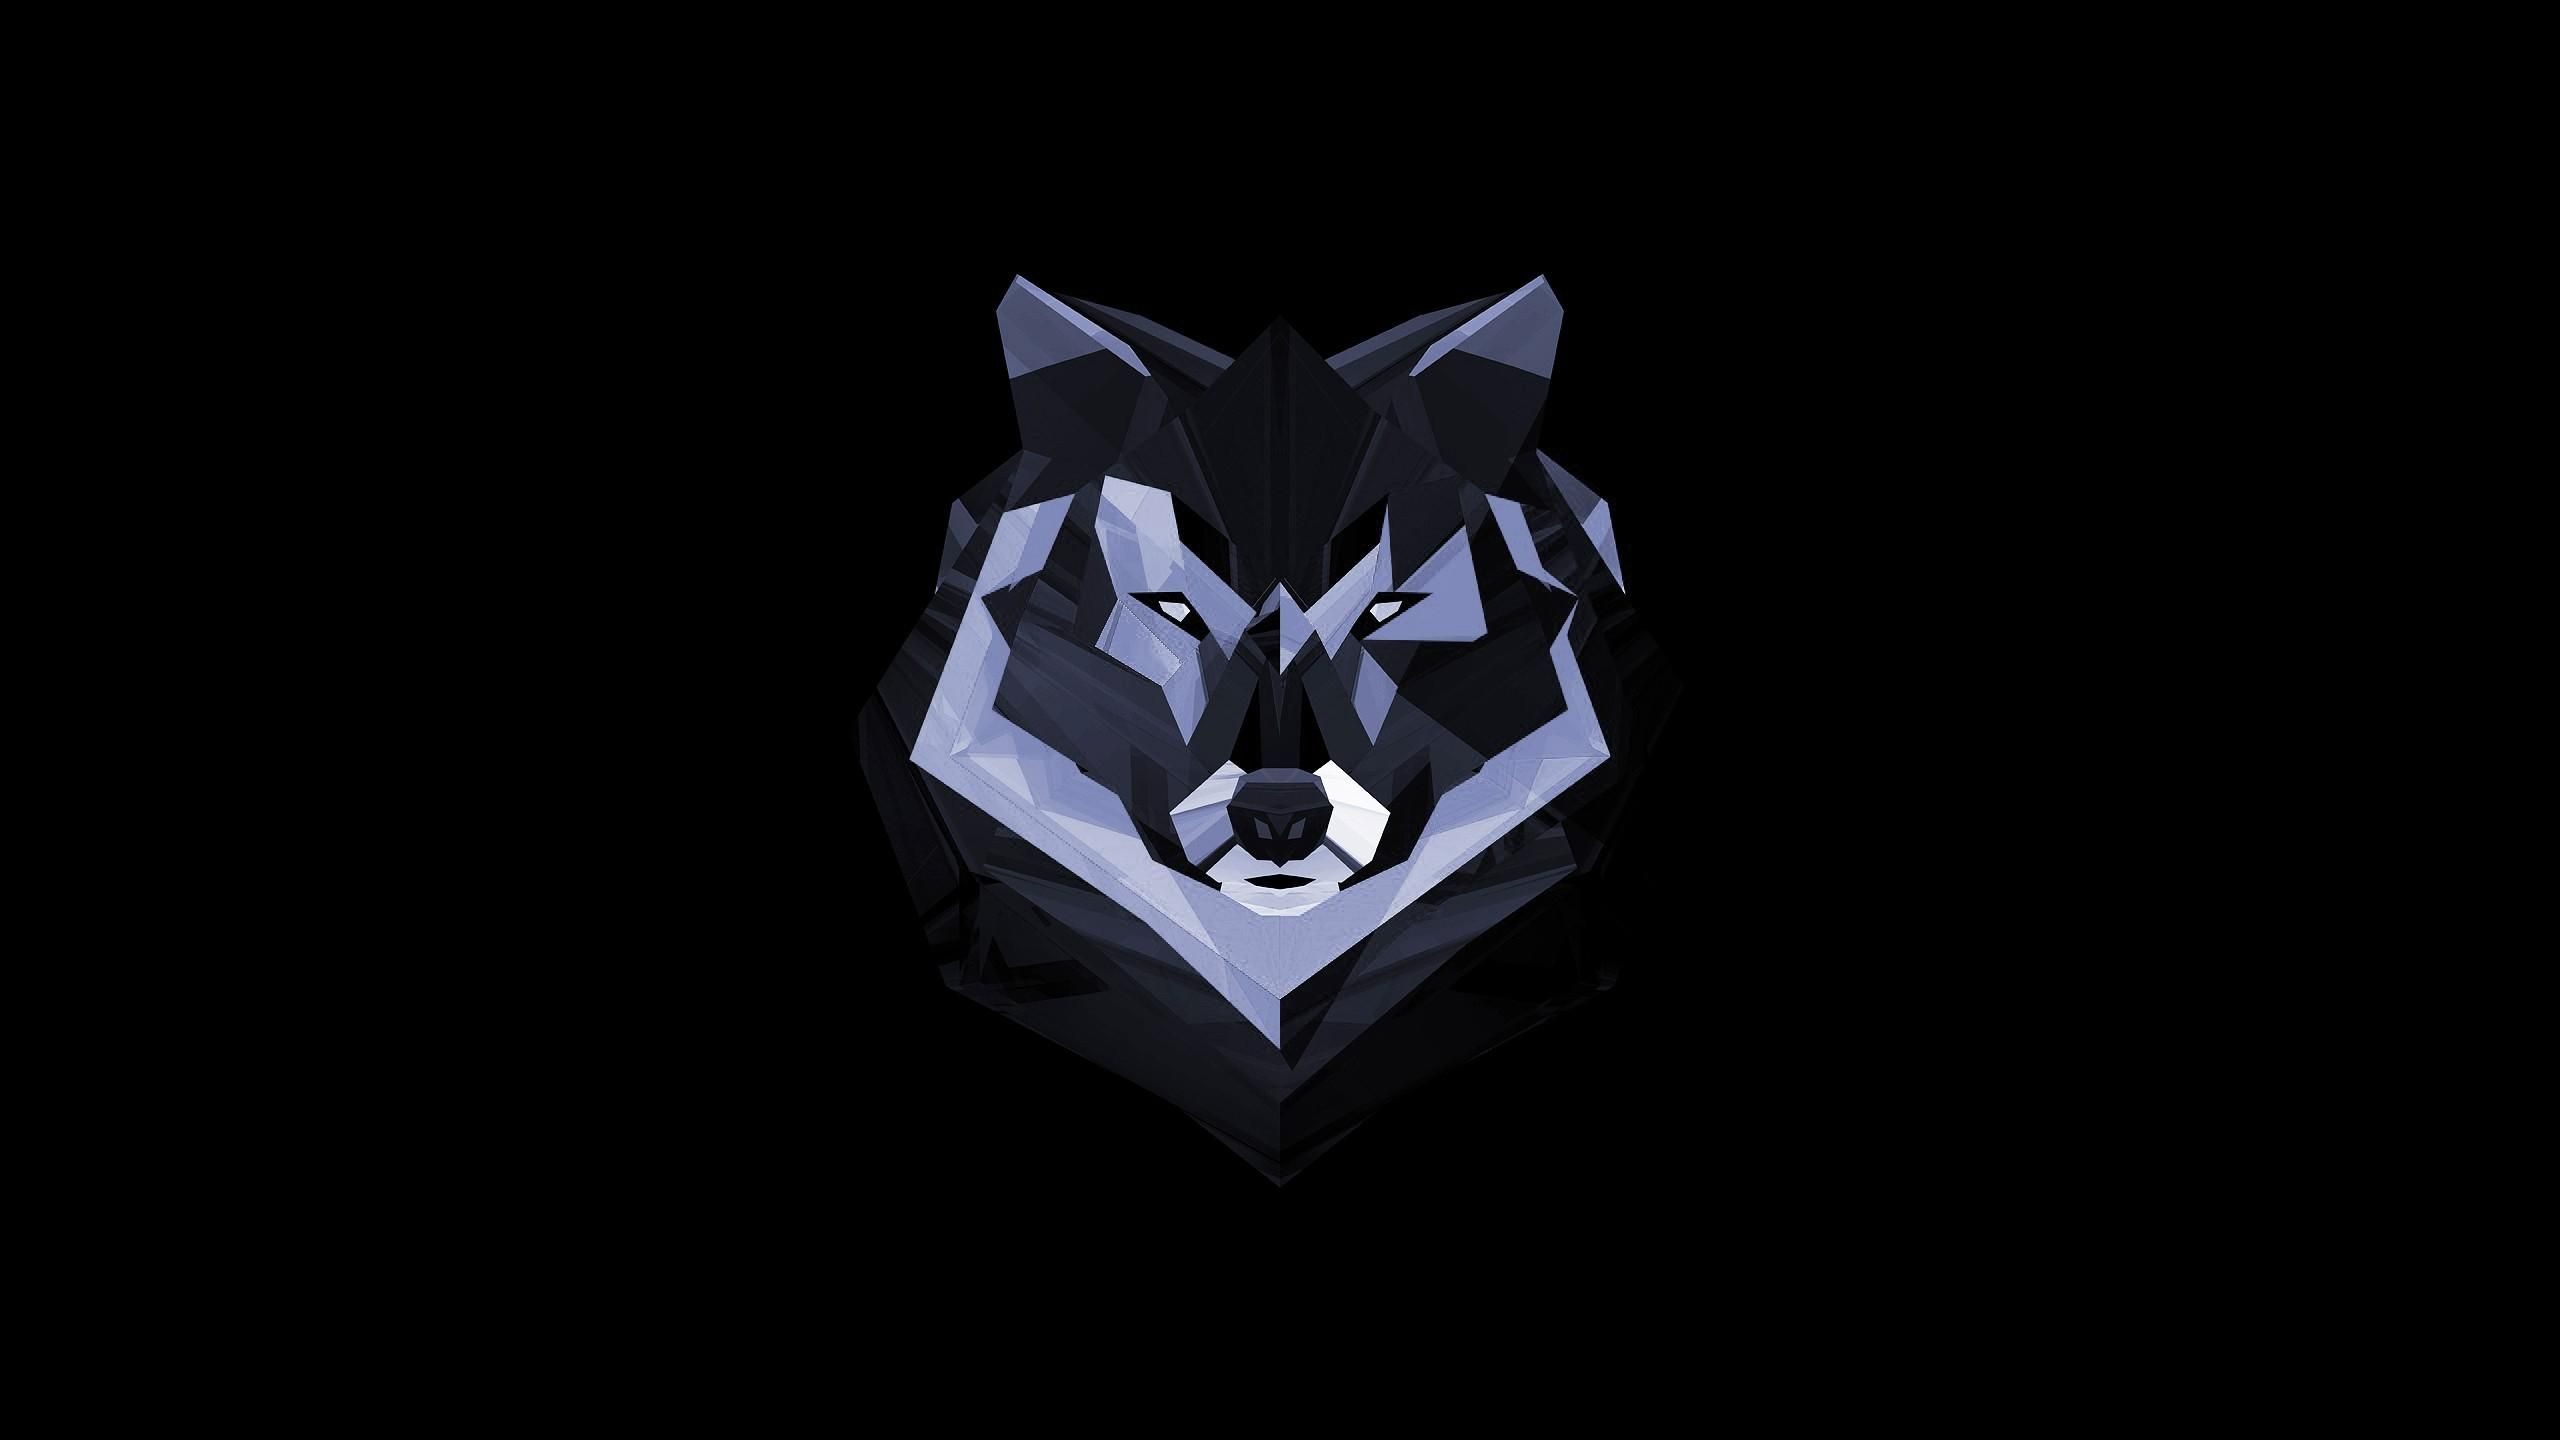 Digital Art Wolf Wallpaper 2560x1440 Id 39377 Wolf Wallpaper Geometric Wolf Art Wallpaper